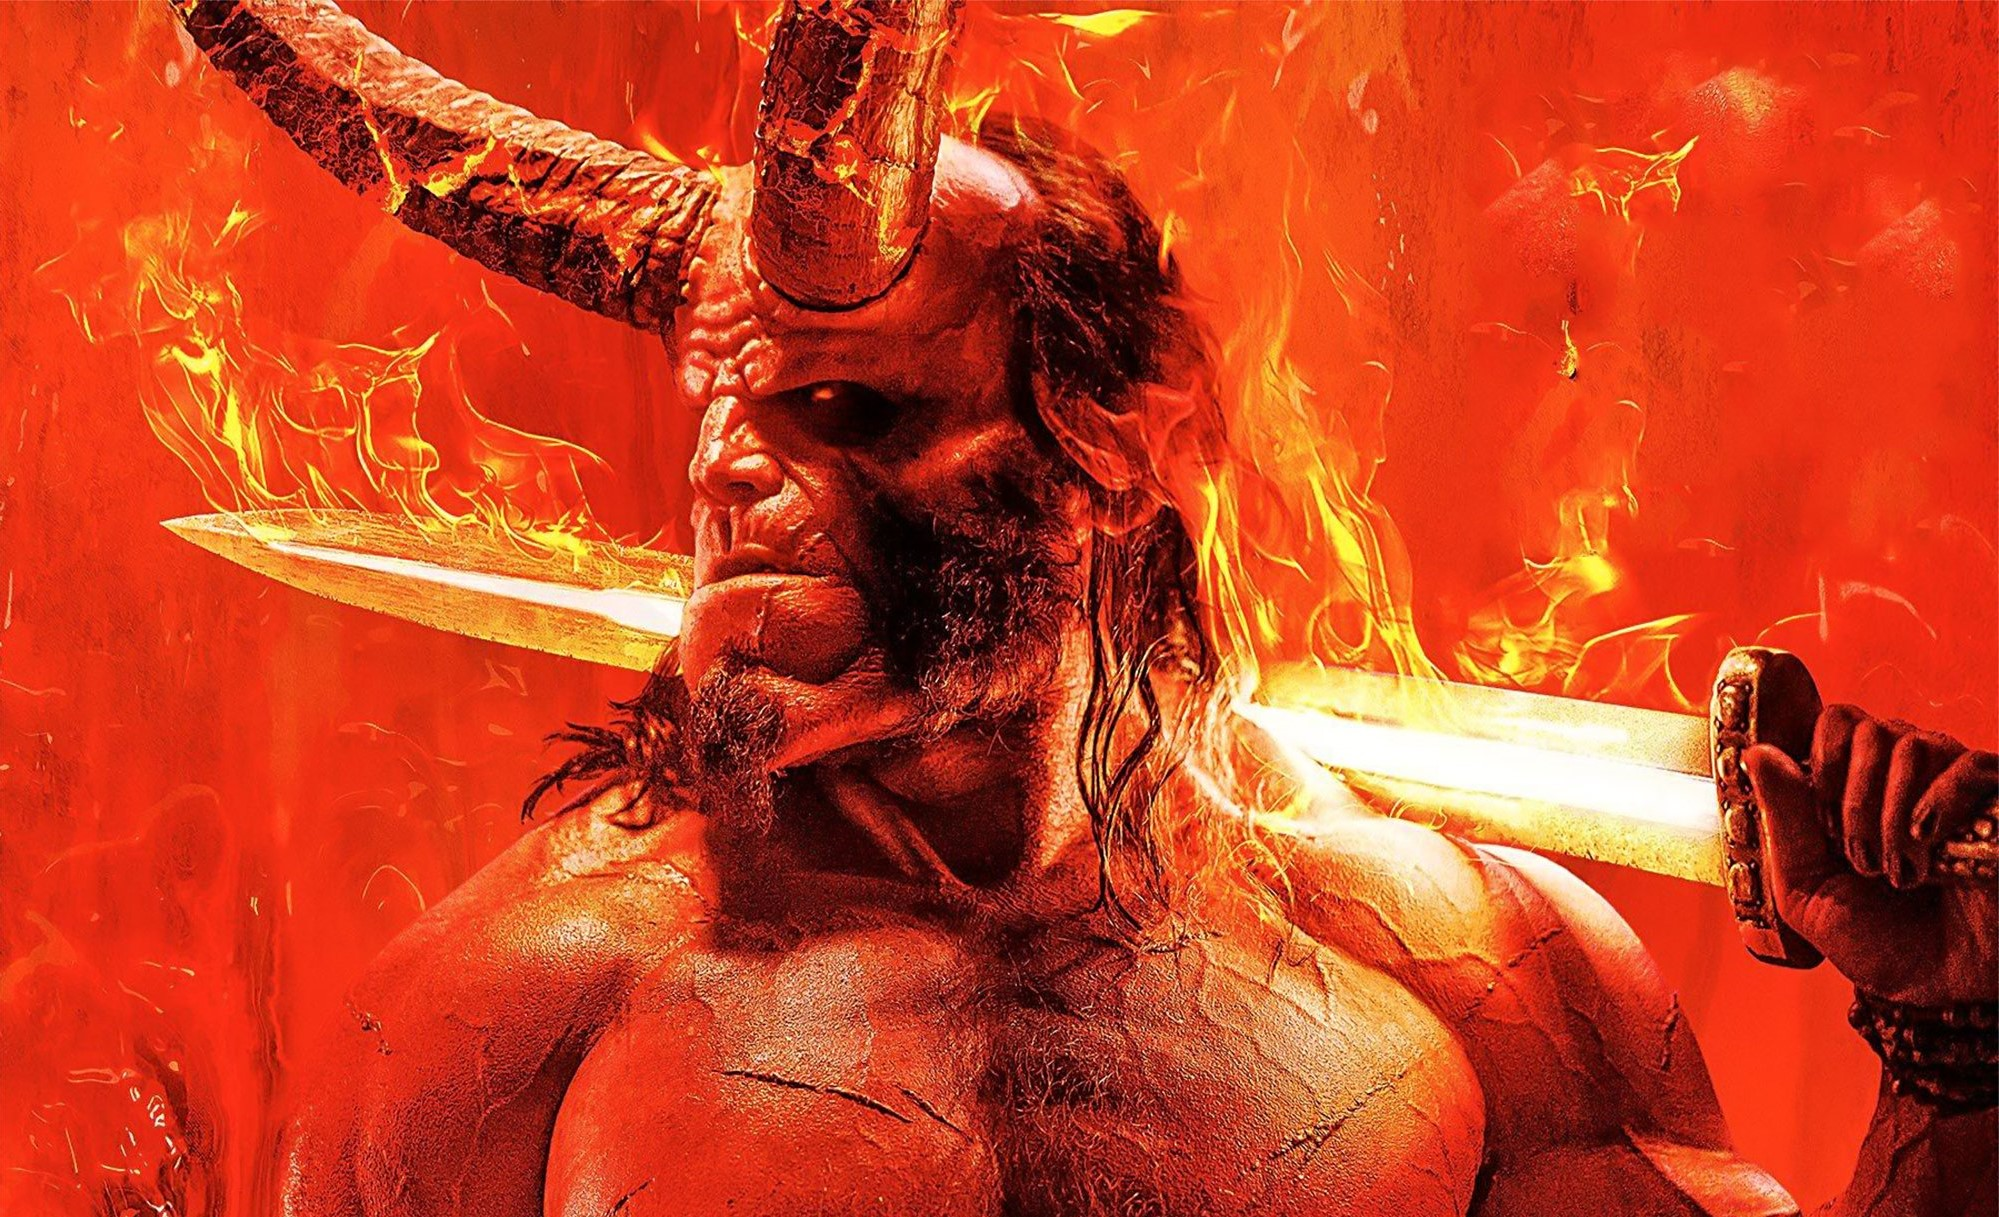 Hellboy is out in cinemas April 12th